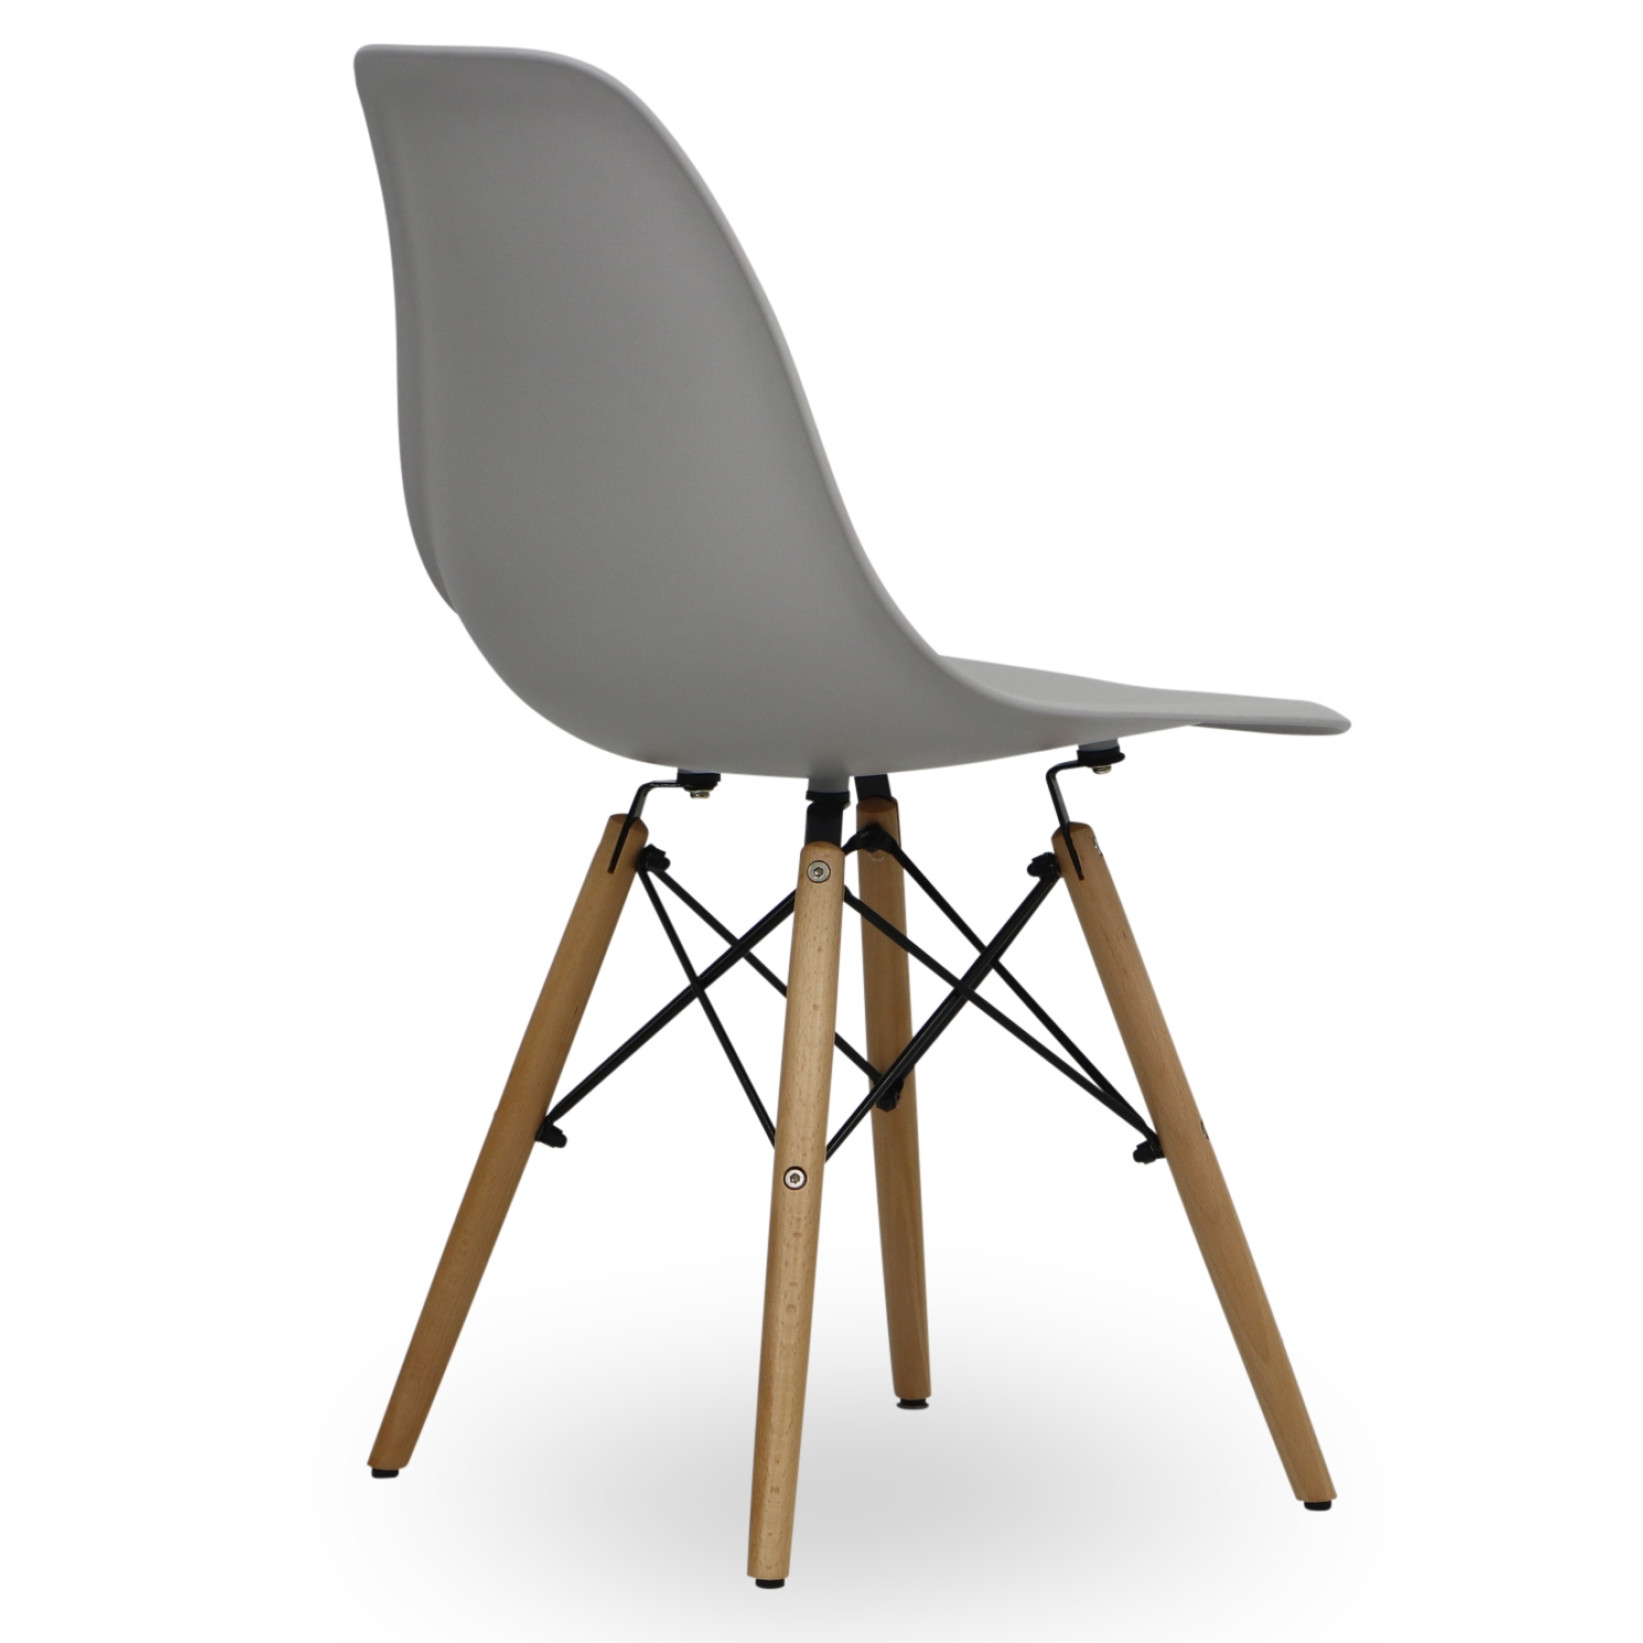 Eames light grey replica designer chair living room for Replica designer furniture